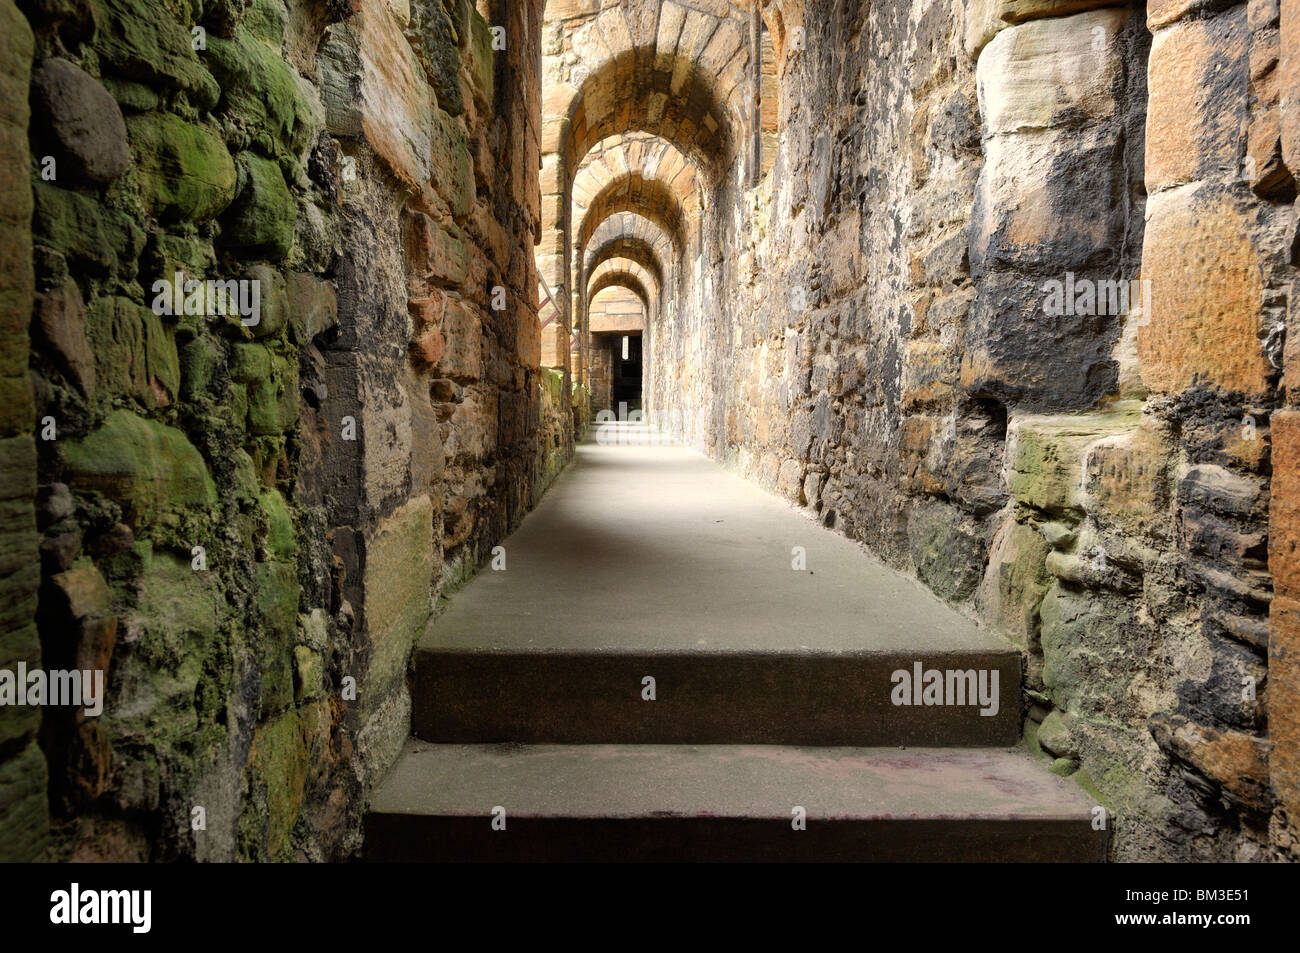 Arched passageway in Linlithgow Palace outside of Edinburgh, Scotland Stock Photo